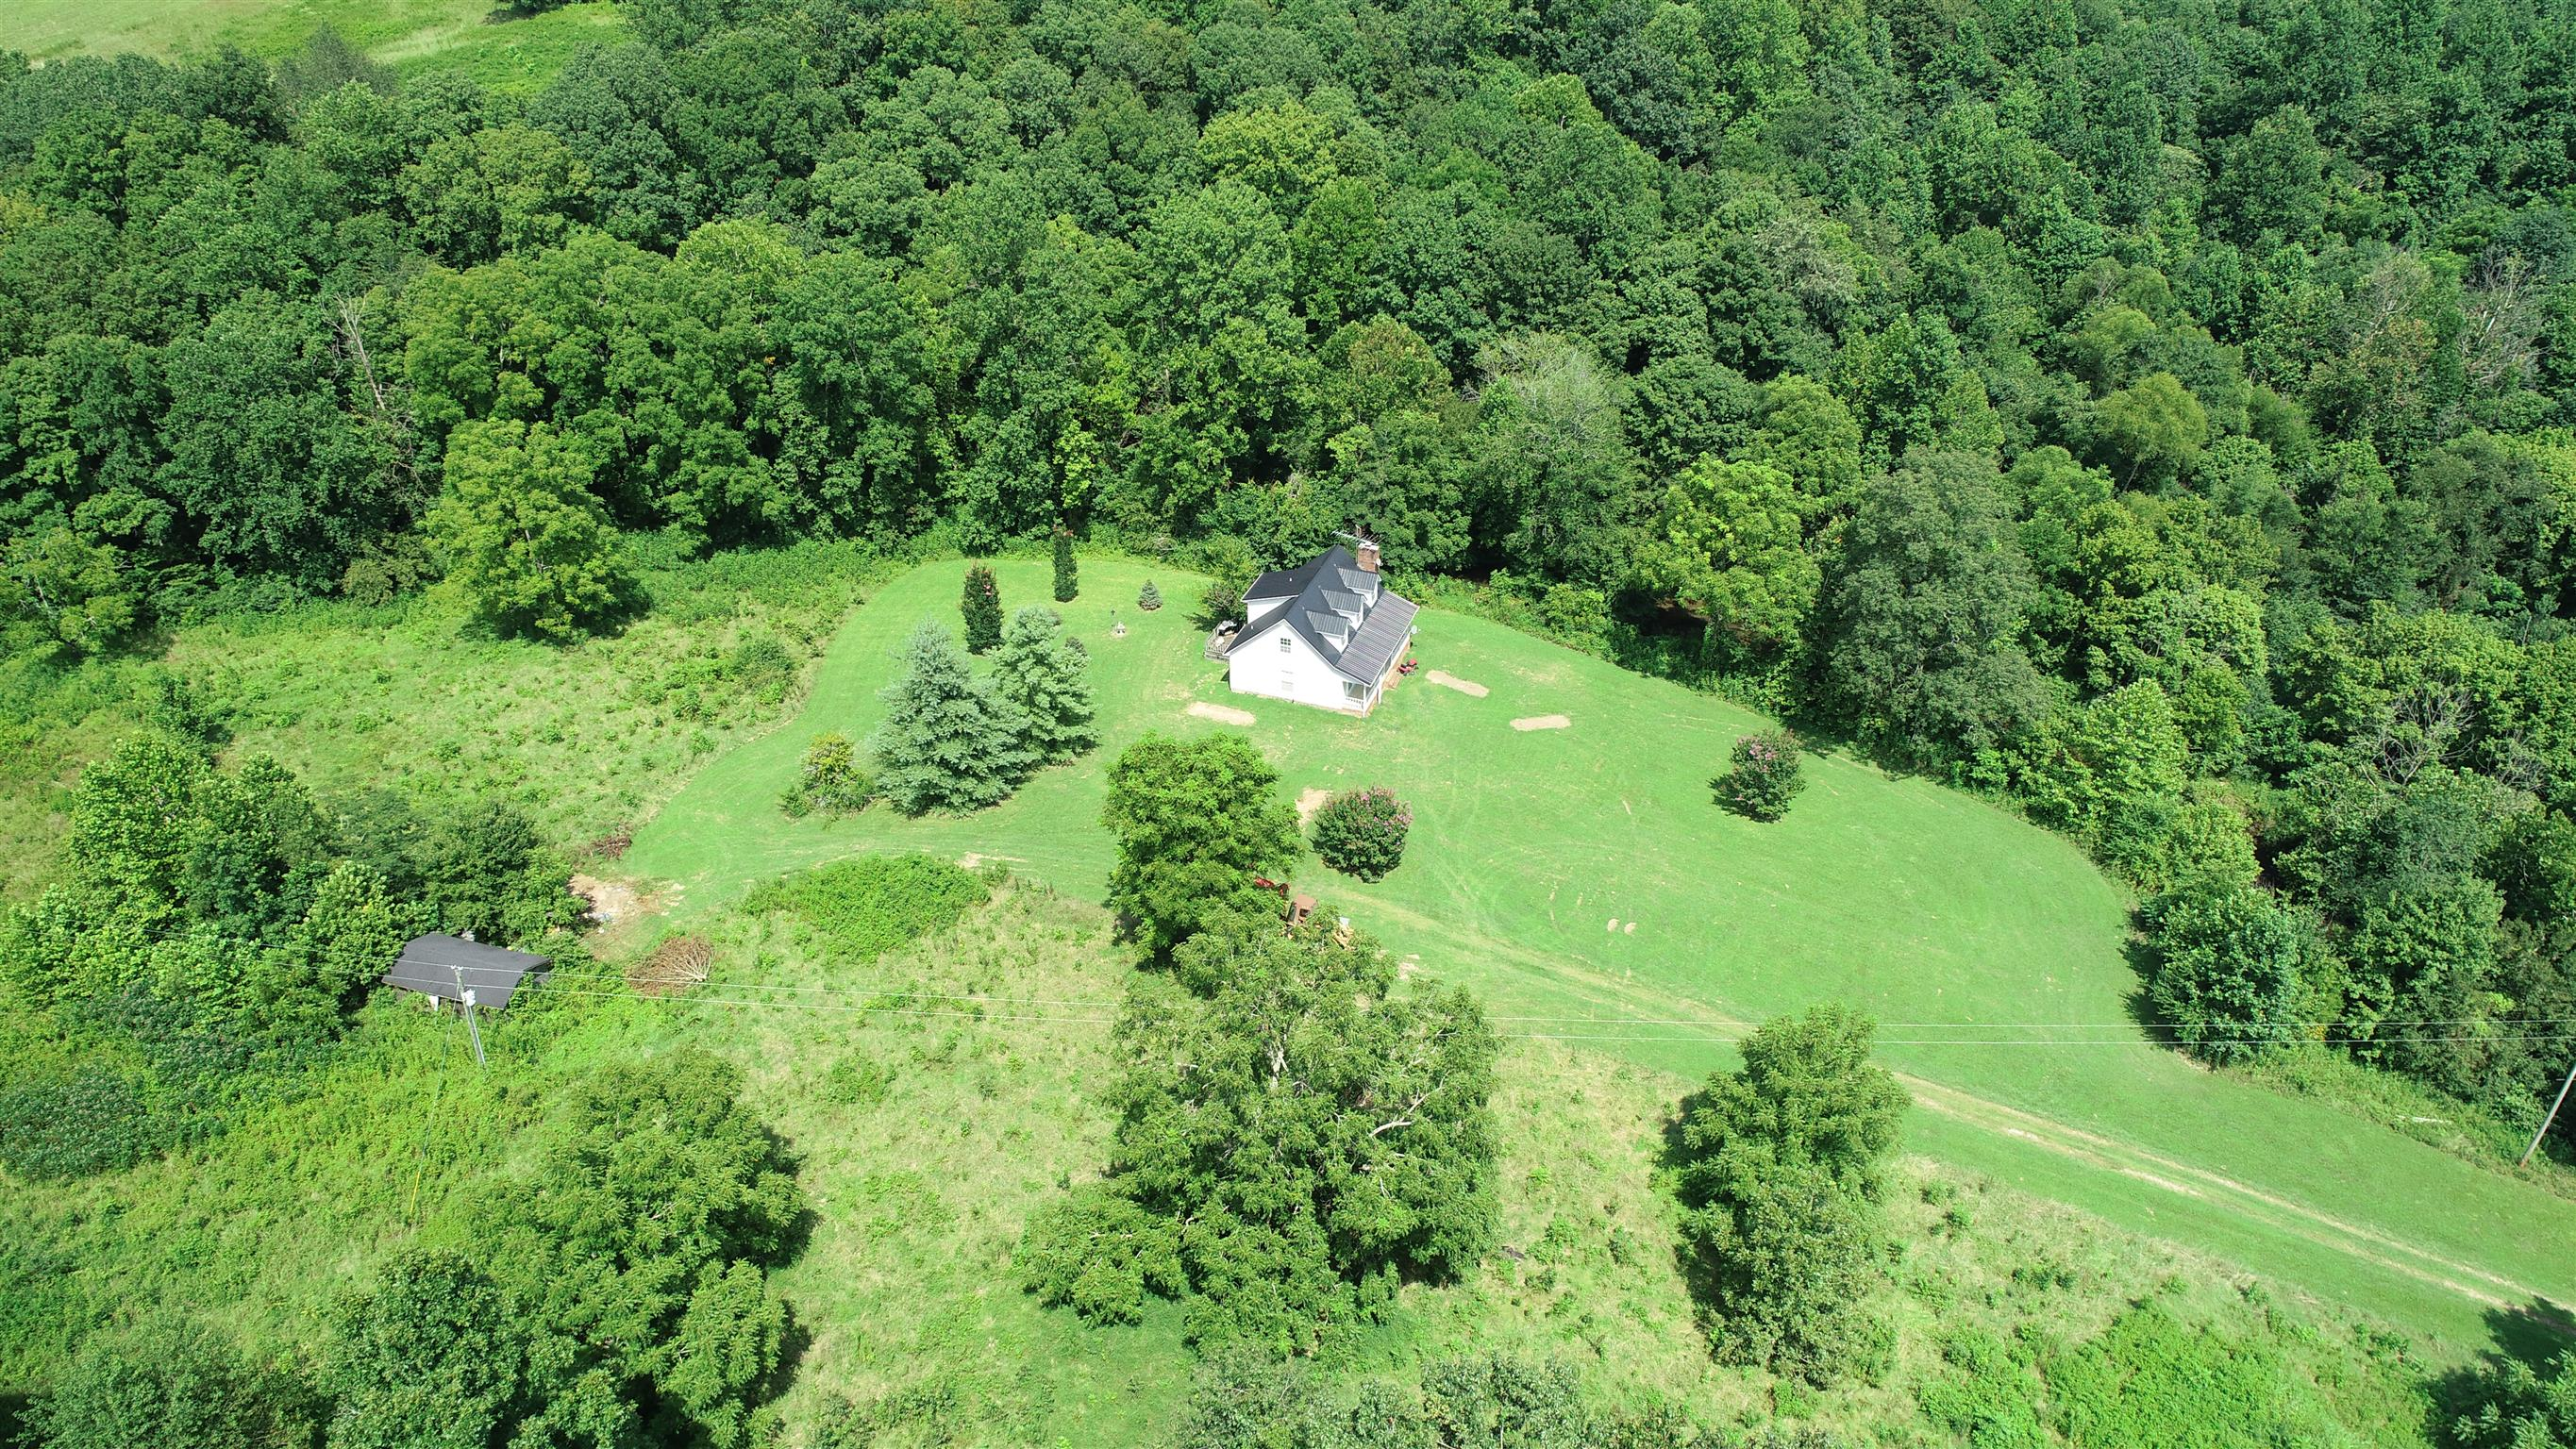 70 E Hannah Rd, Summertown, TN 38483 - Summertown, TN real estate listing